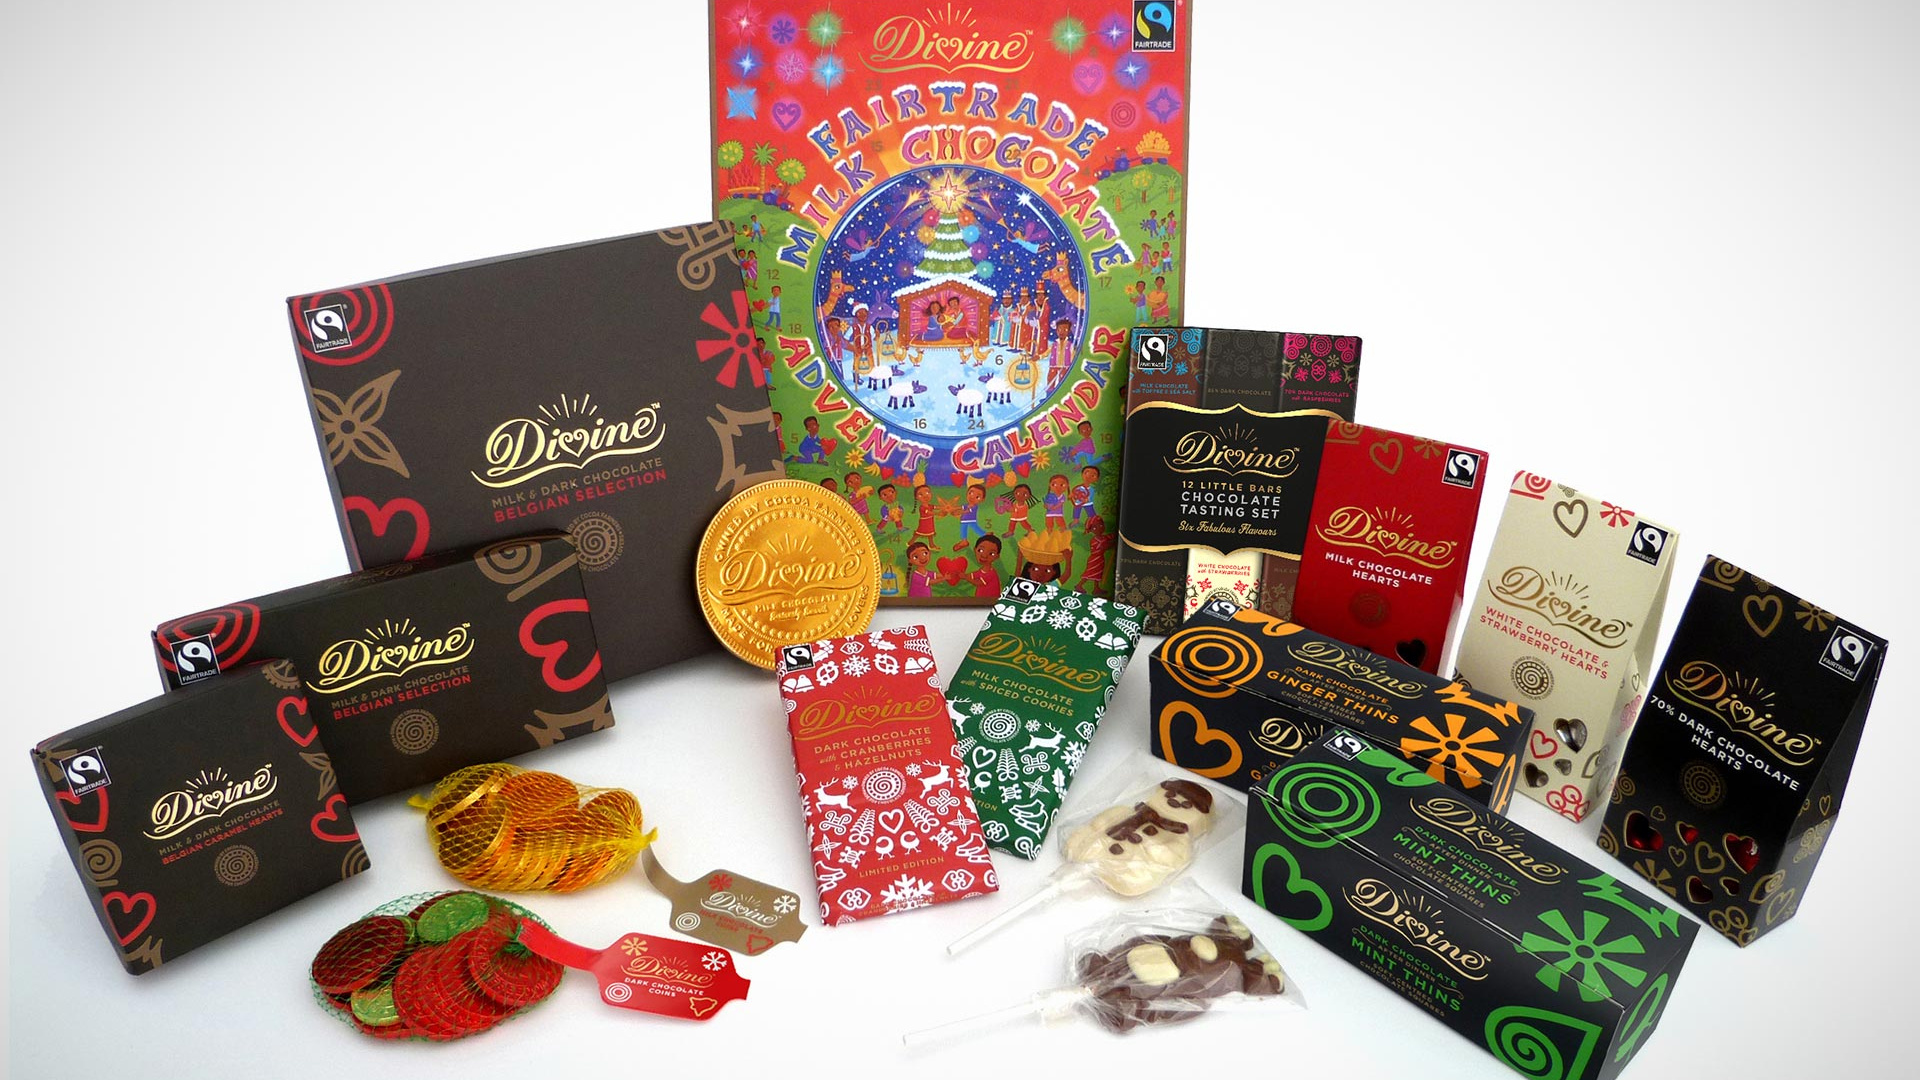 Divine's Fairtrade advent calendar